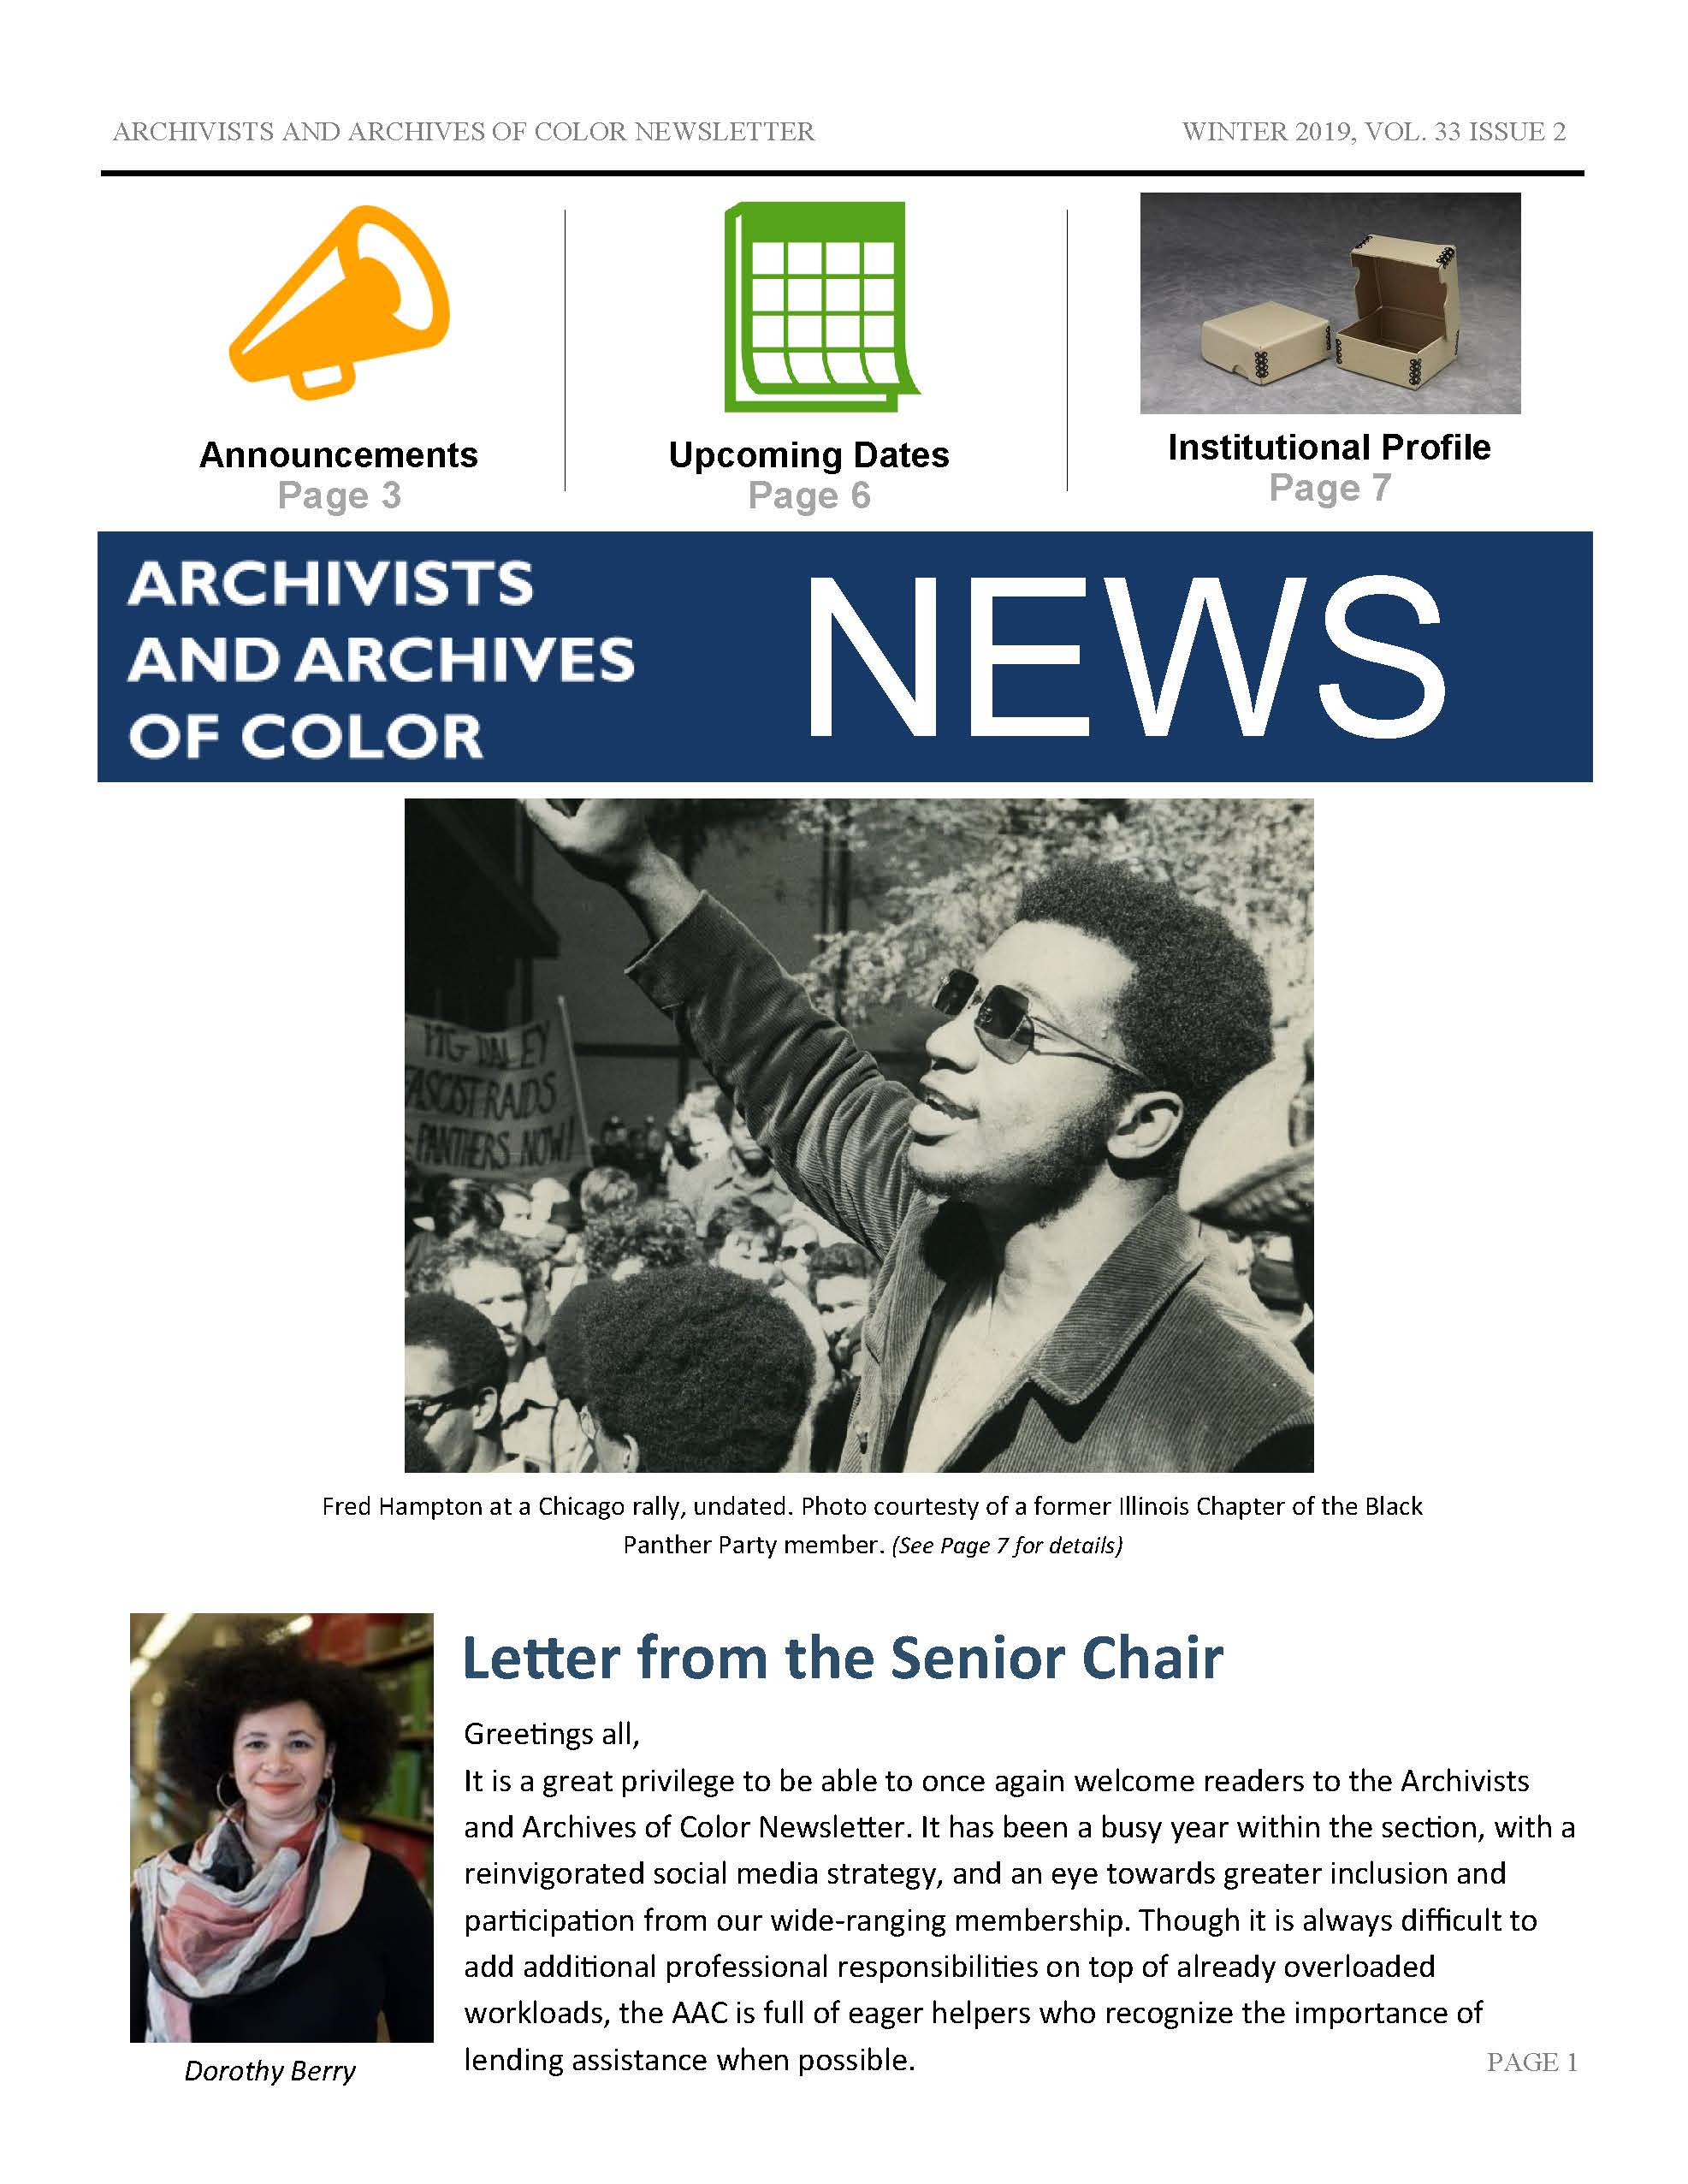 Archivists and Archives of Color Newsletter Winter 2019, Vol. 33 No. 2